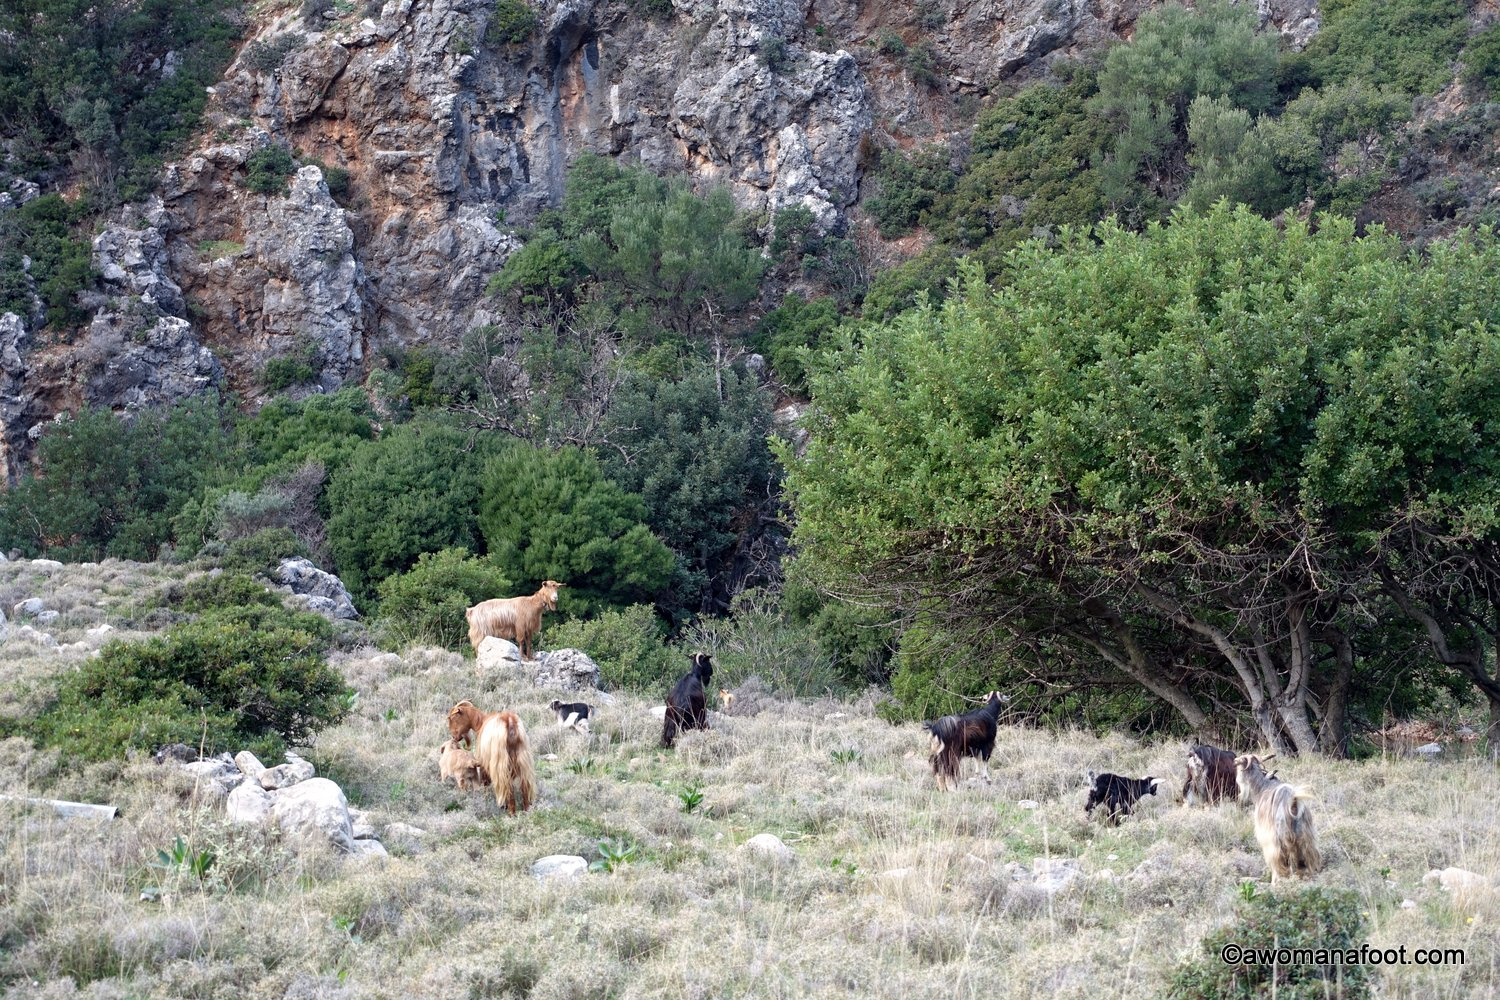 goats on Crete kri kri Greece animals solo hiking